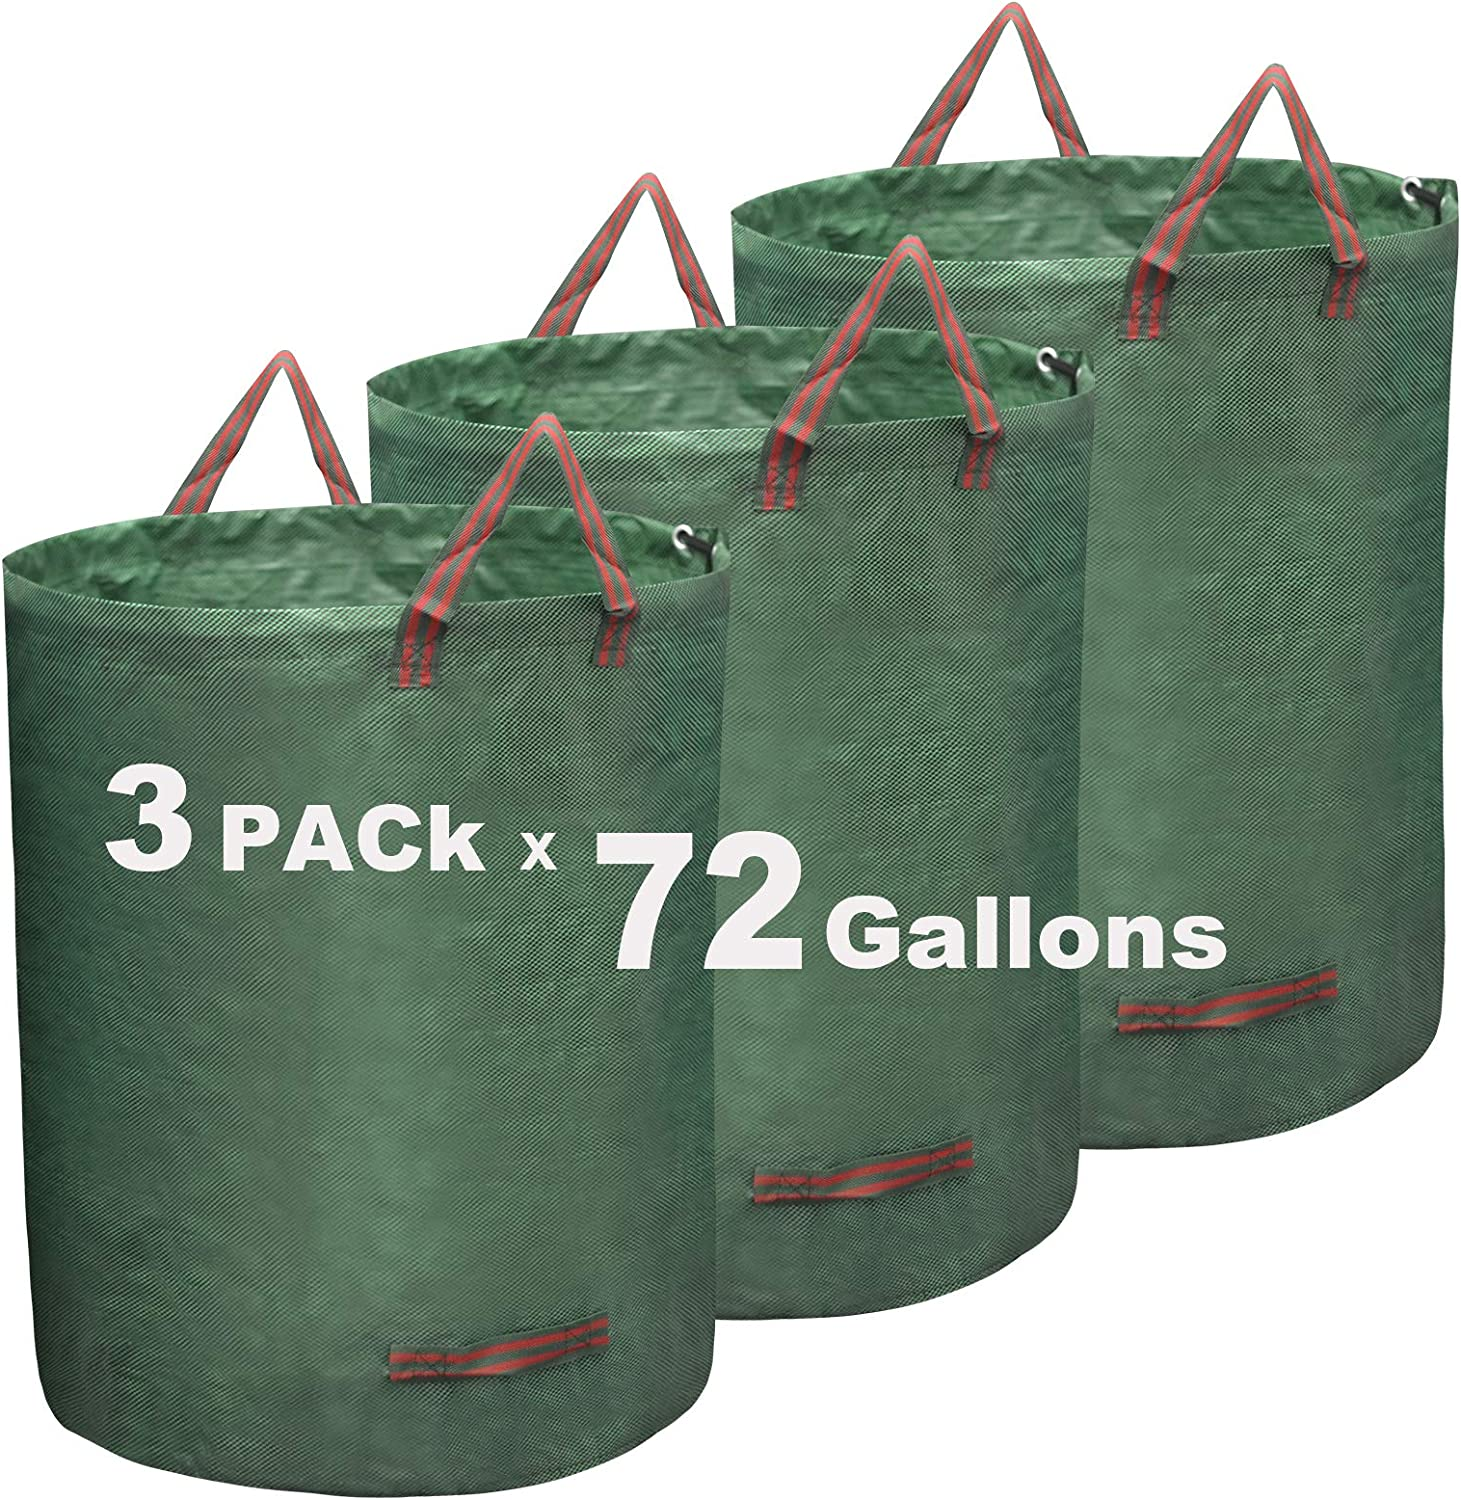 FunnySeed 72 Gallon Garden Leaf Bags 3-Pack Reusable Yard Waste Bags Gardening Collapsible Rubbish Container Bags with Handles (72G)